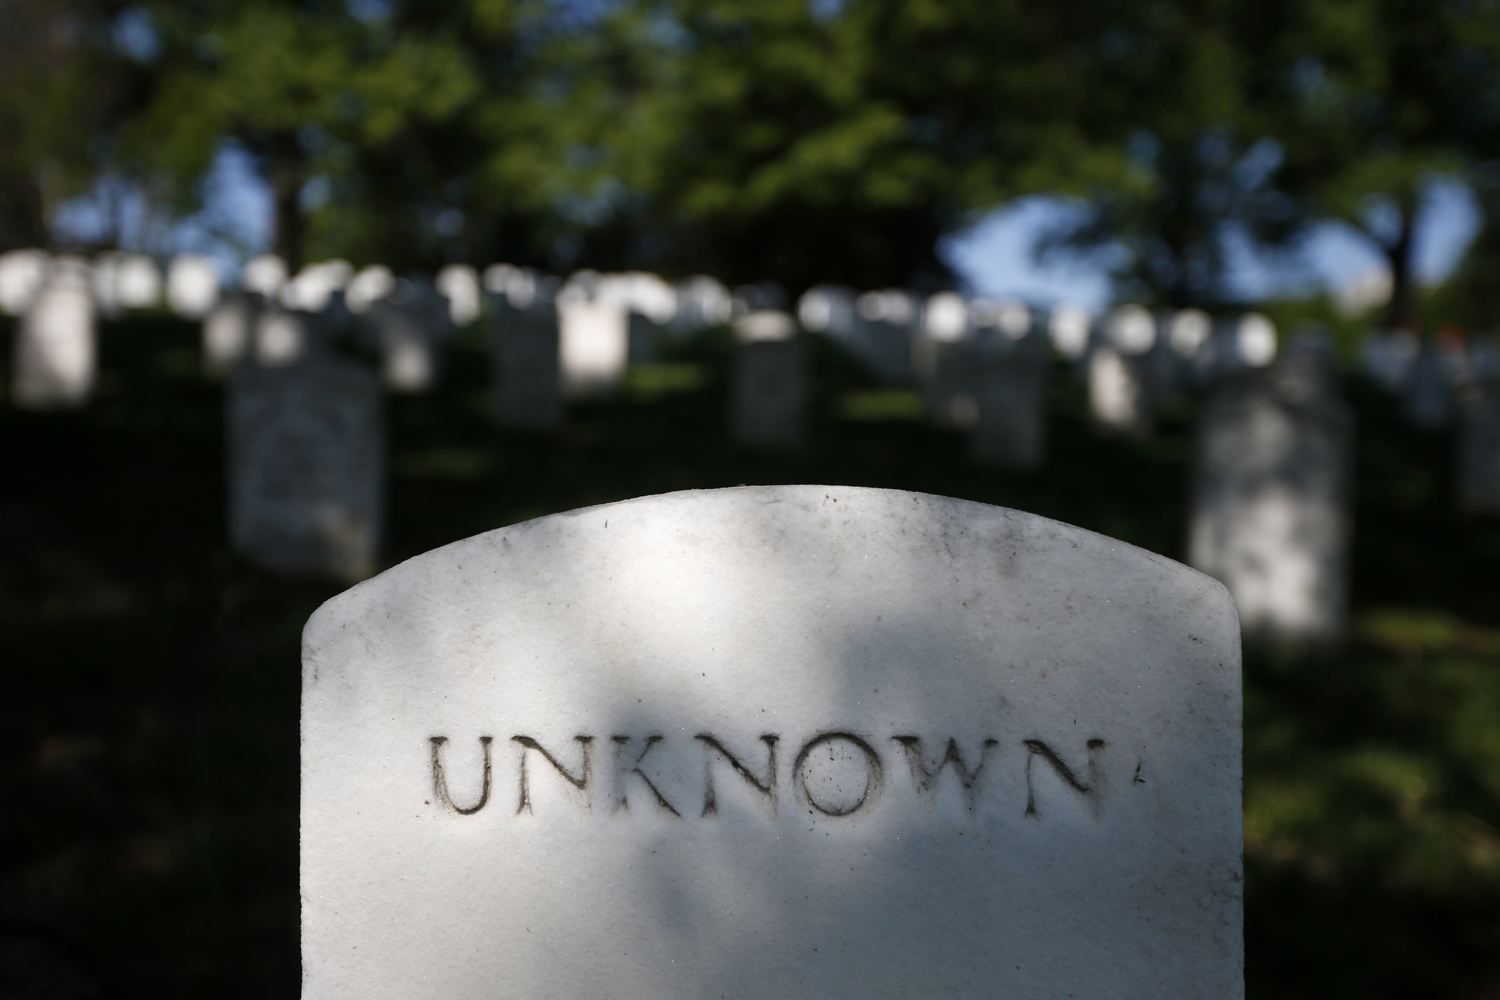 May 13, 2014. A grave marker for an unknown soldier lies not far from the gravesite of Army Pvt. William Christman, who was the first military burial at the cemetery, marking the beginning of commemorations of the 150th anniversary of Arlington National Cemetery in Arlington, Va.